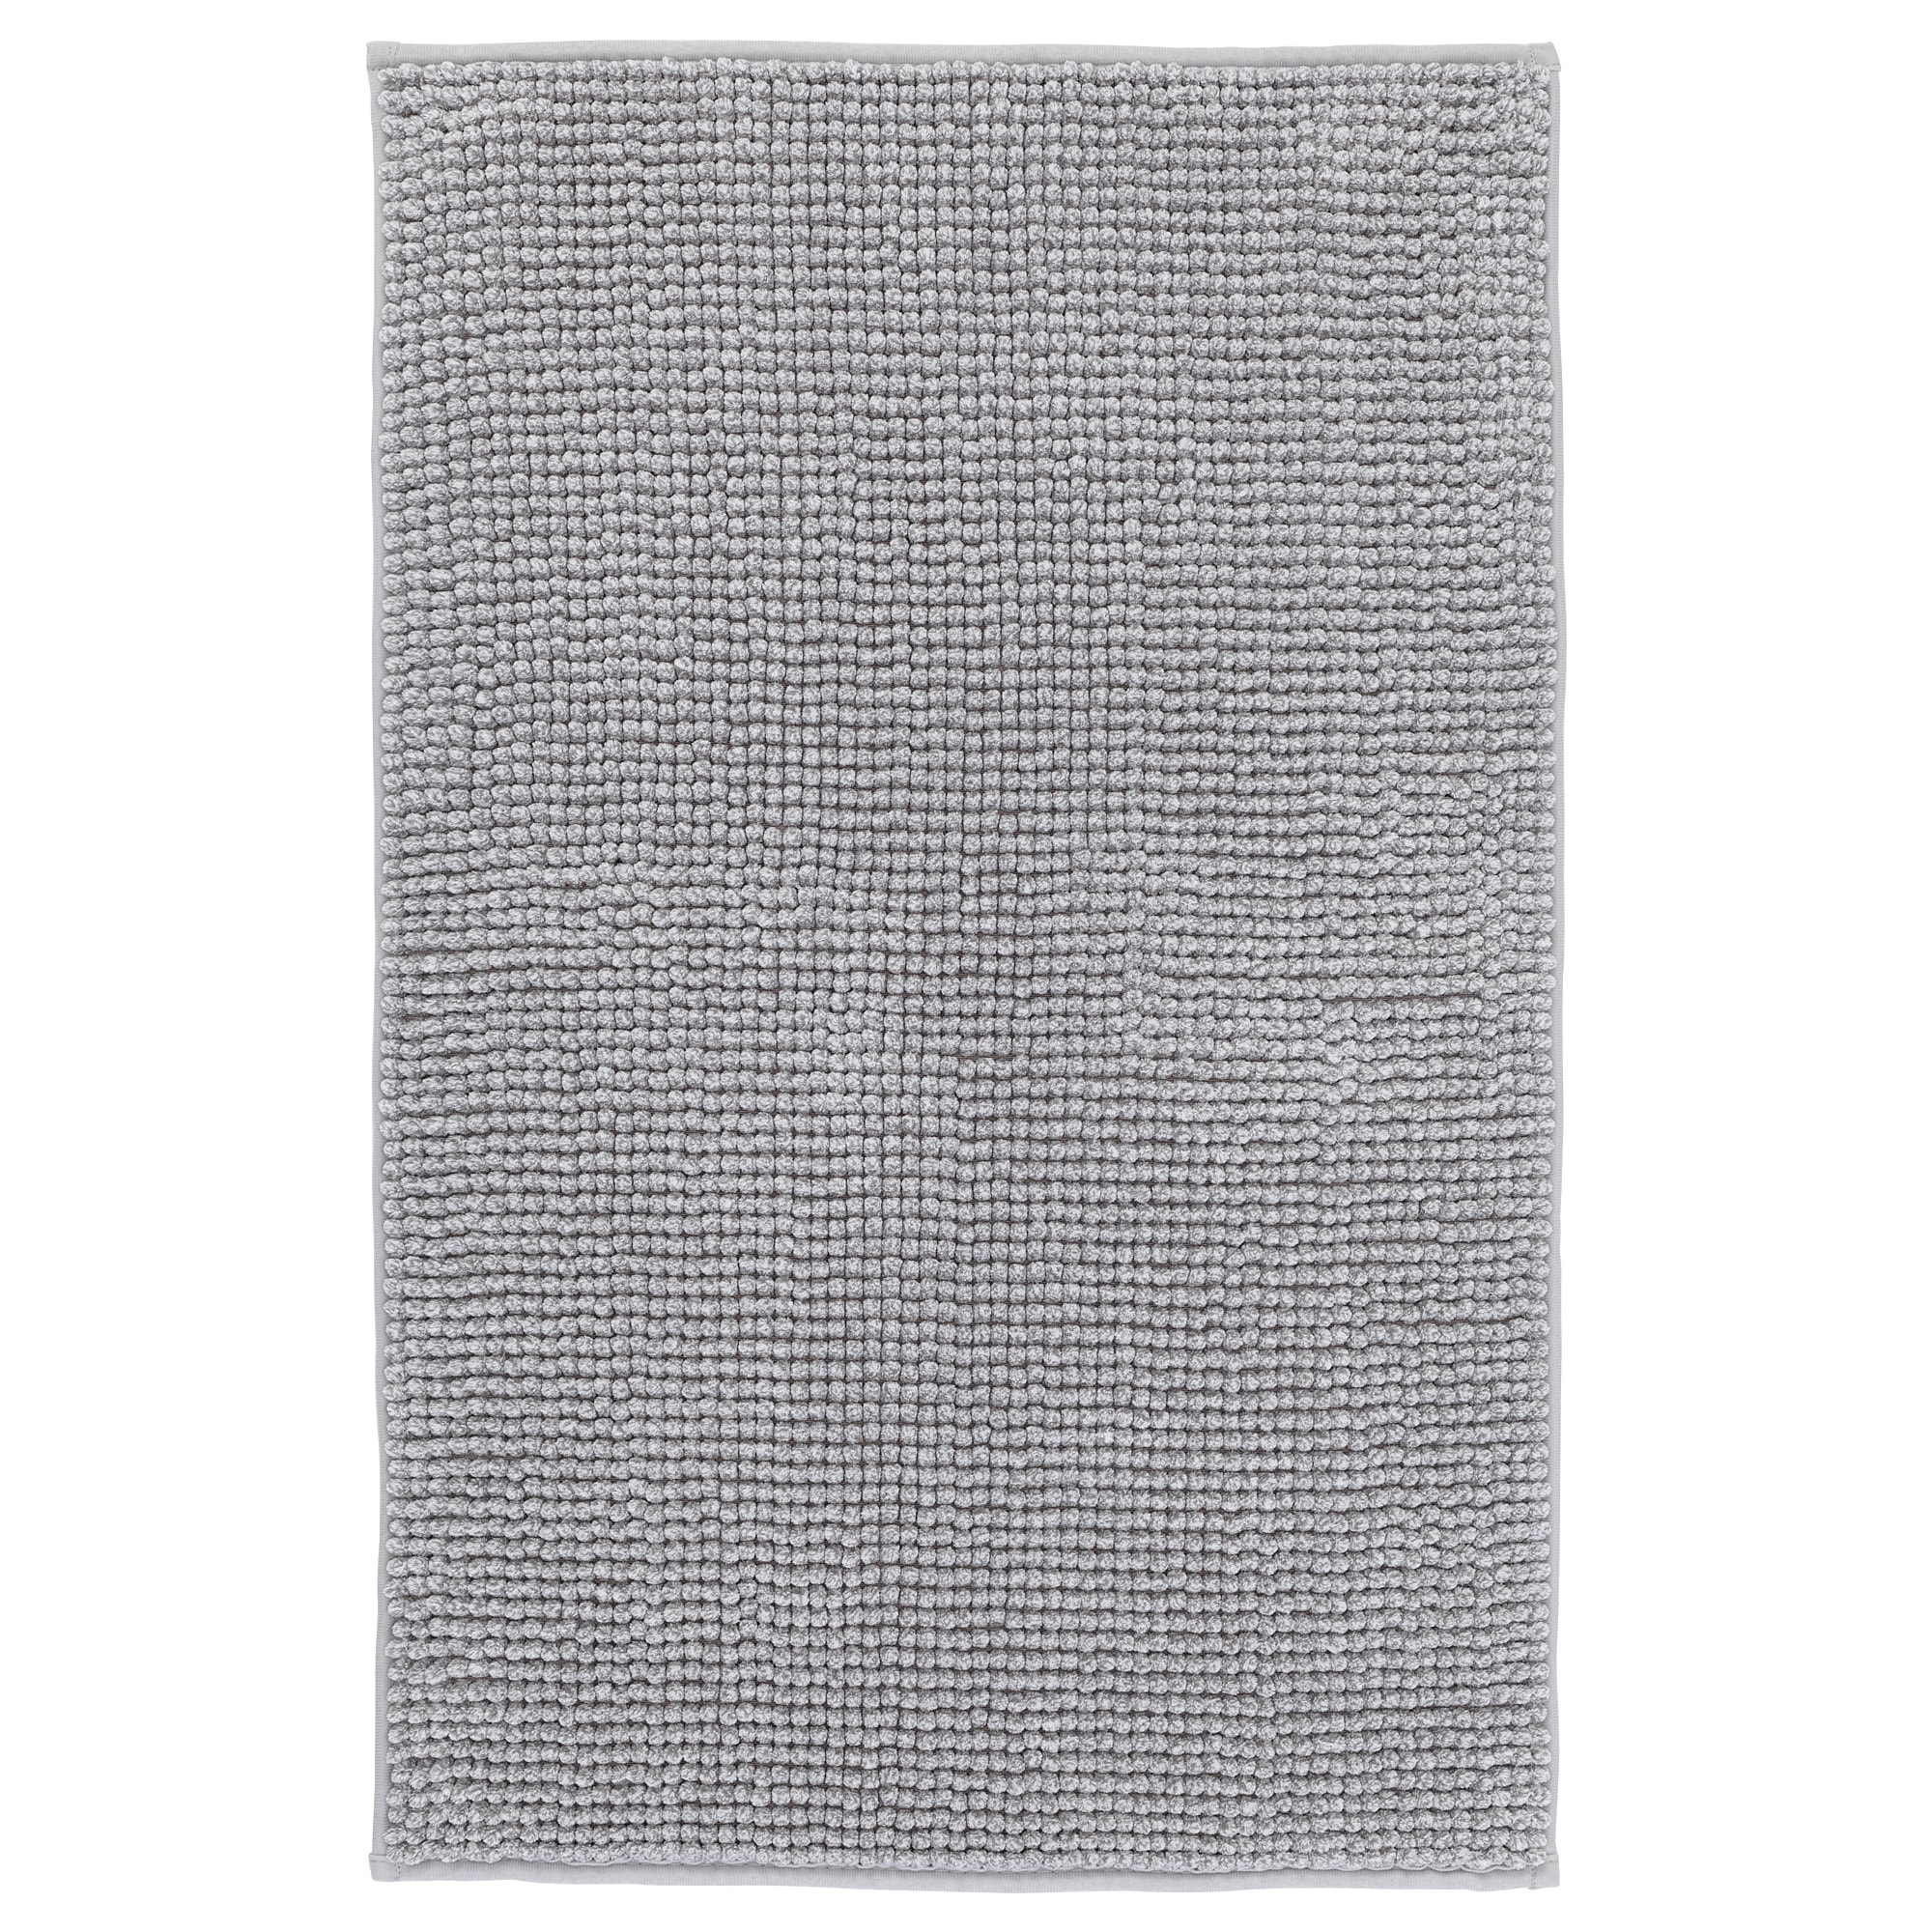 225 & Bath Mats - Bathroom Textiles - IKEA